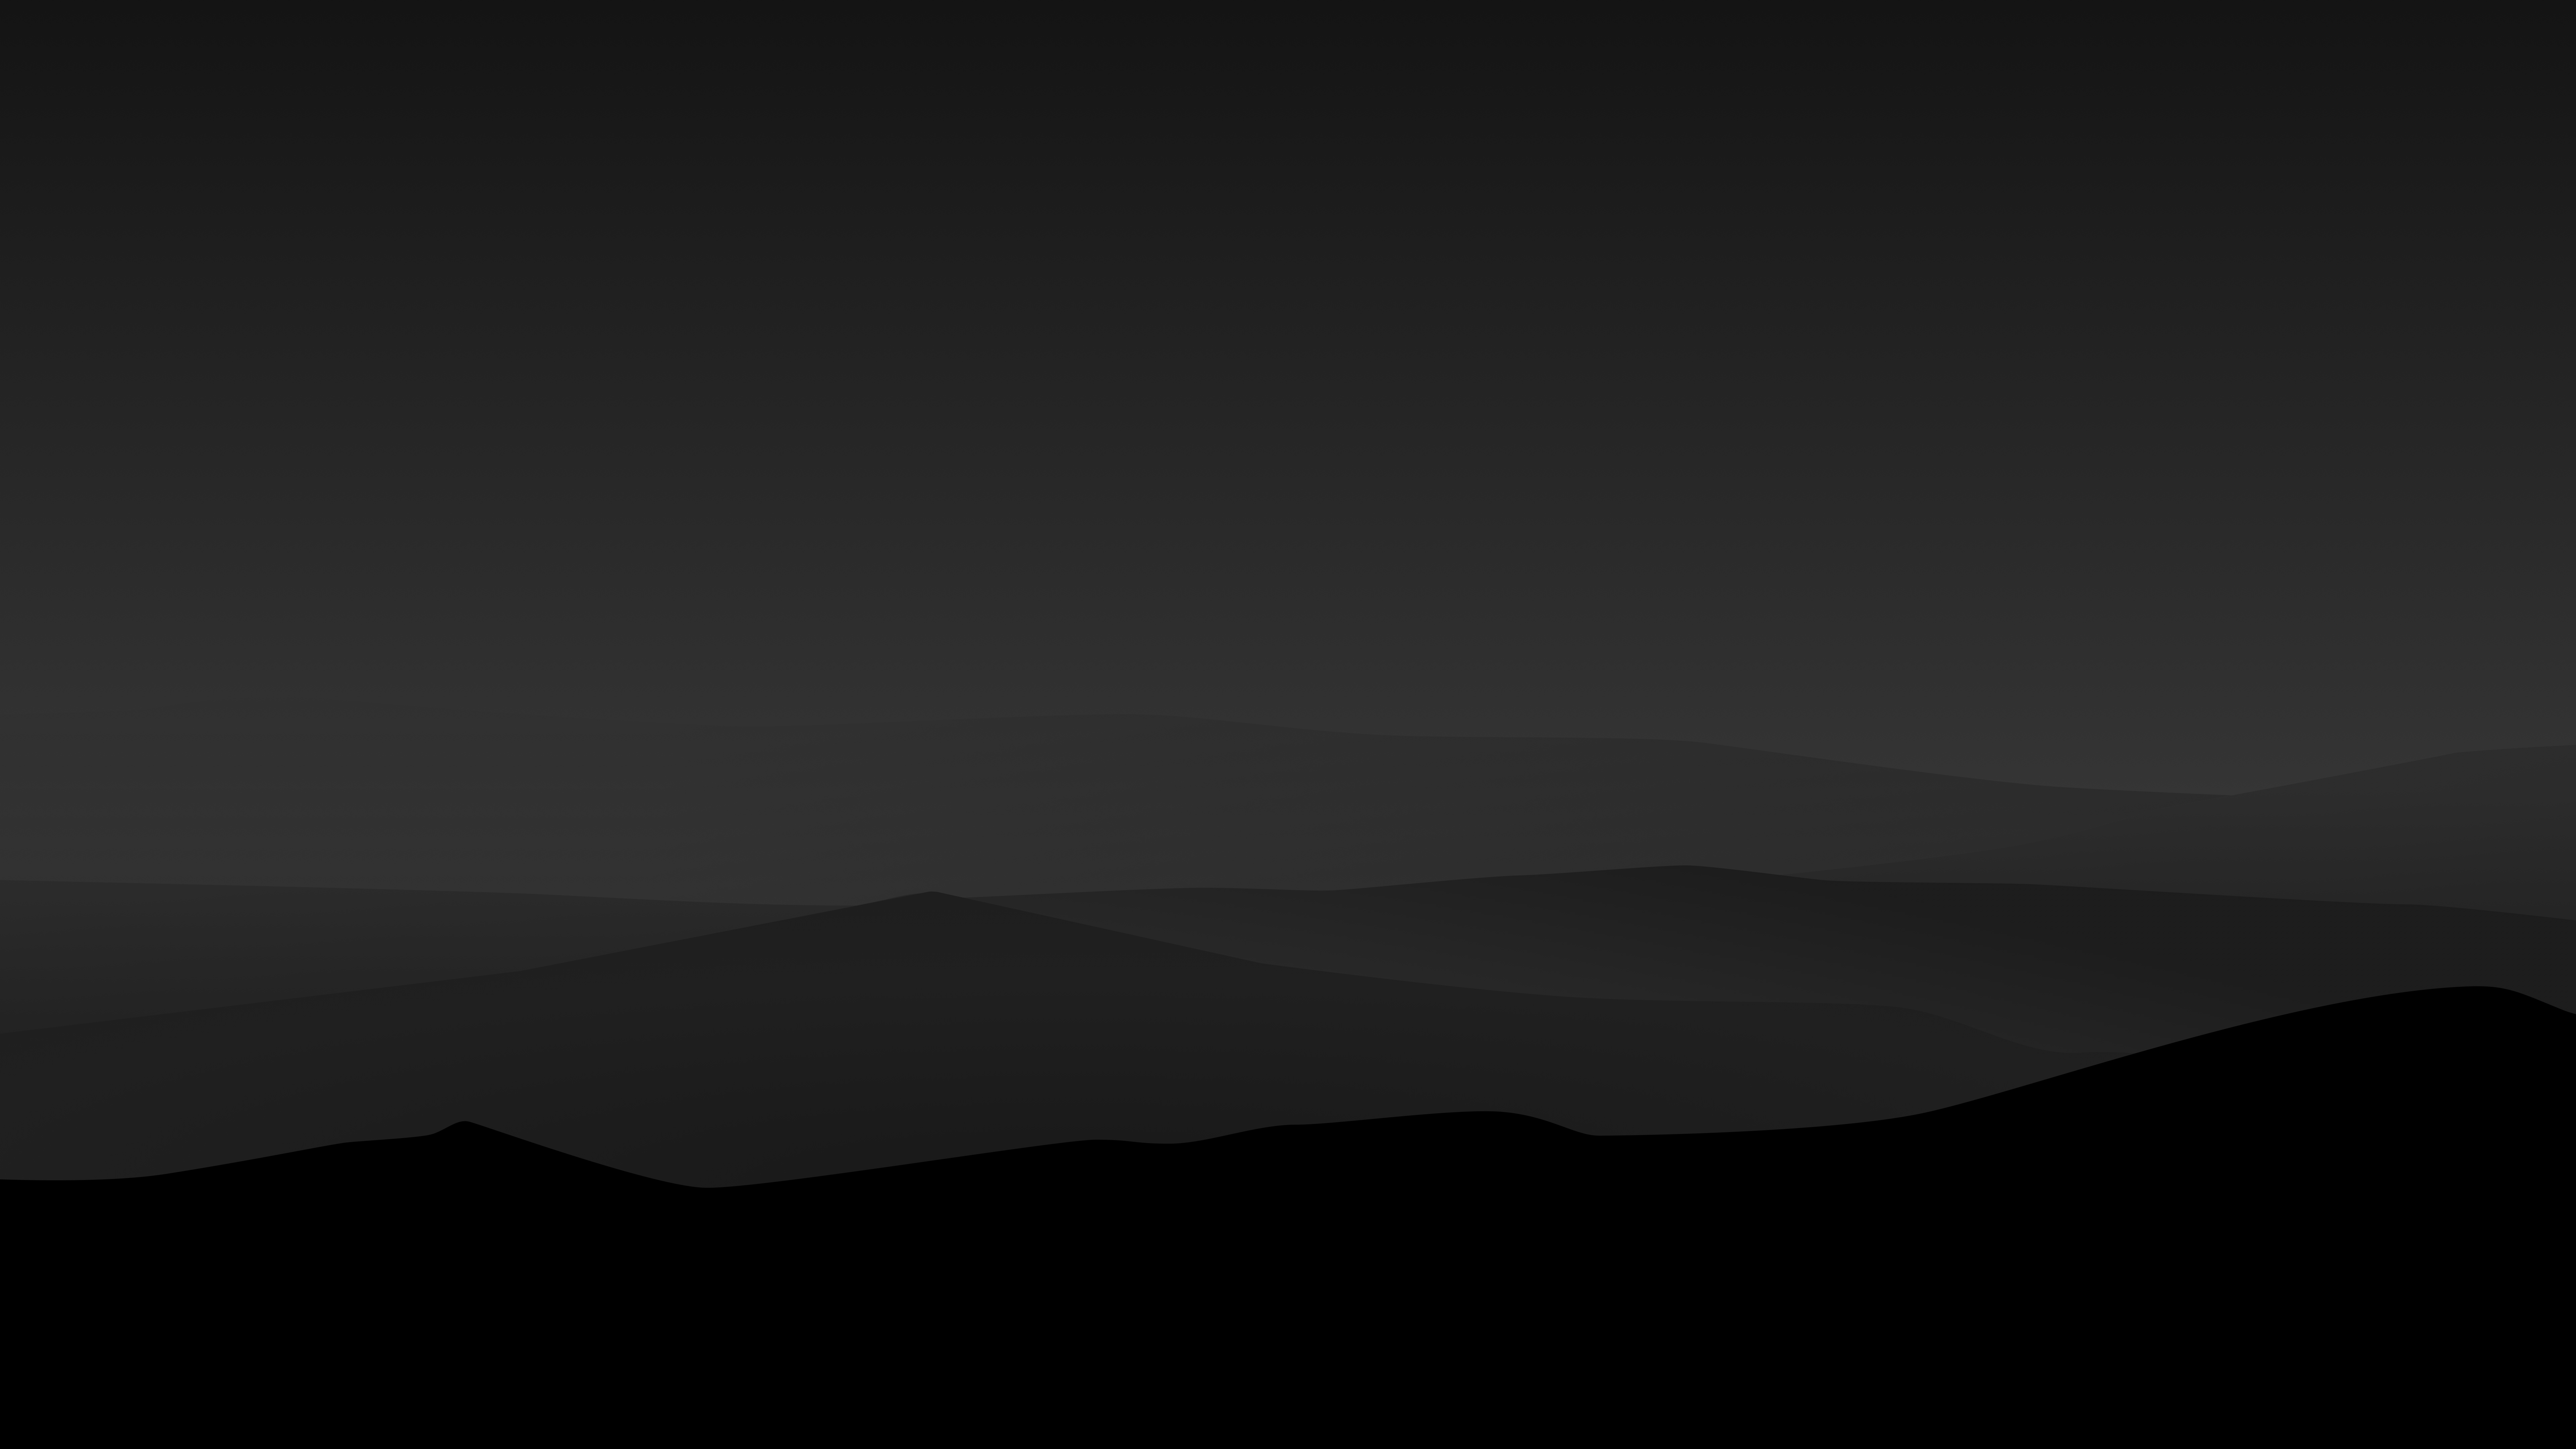 Dark Night Mountains Minimalist 4k, HD Artist, 4k ...